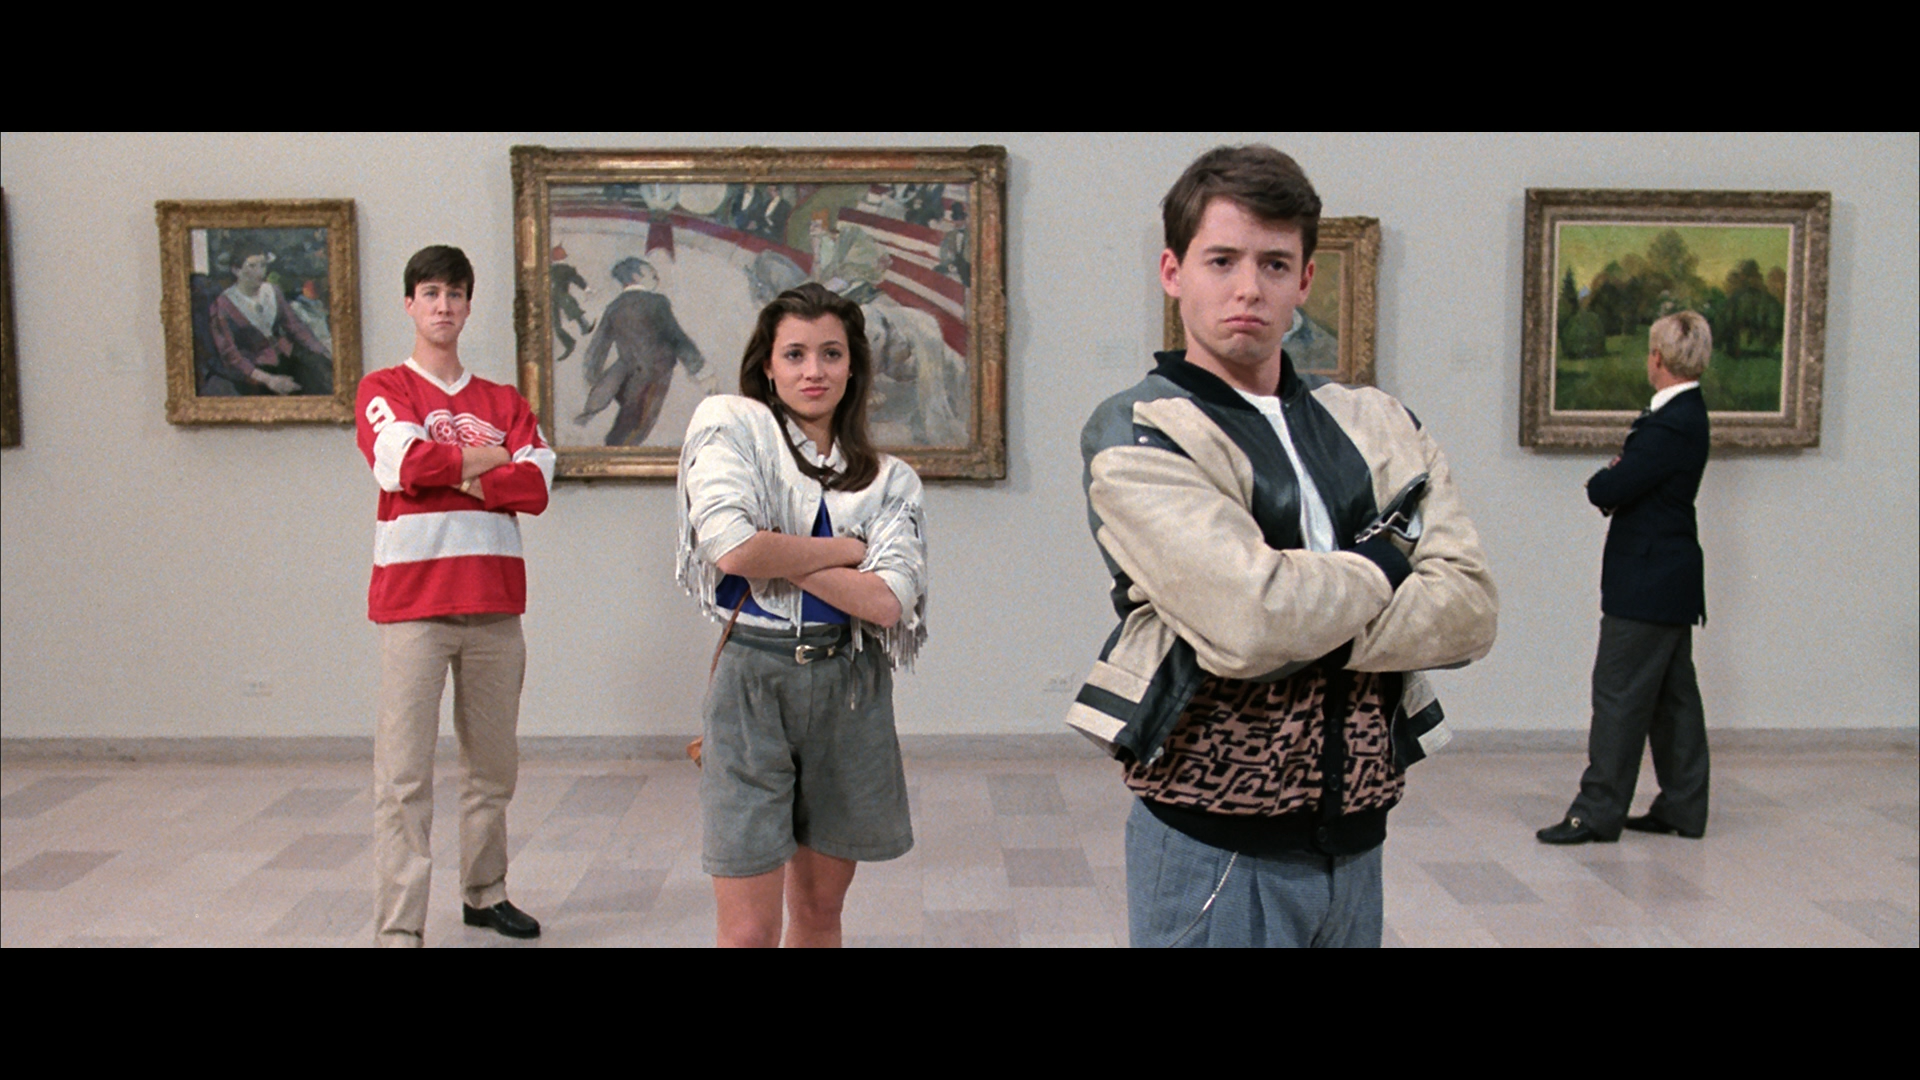 ferris buellers day off Watch ferris bueller's day off starring matthew broderick in this comedy on directv it's available to watch on tv, online, tablets, phone.